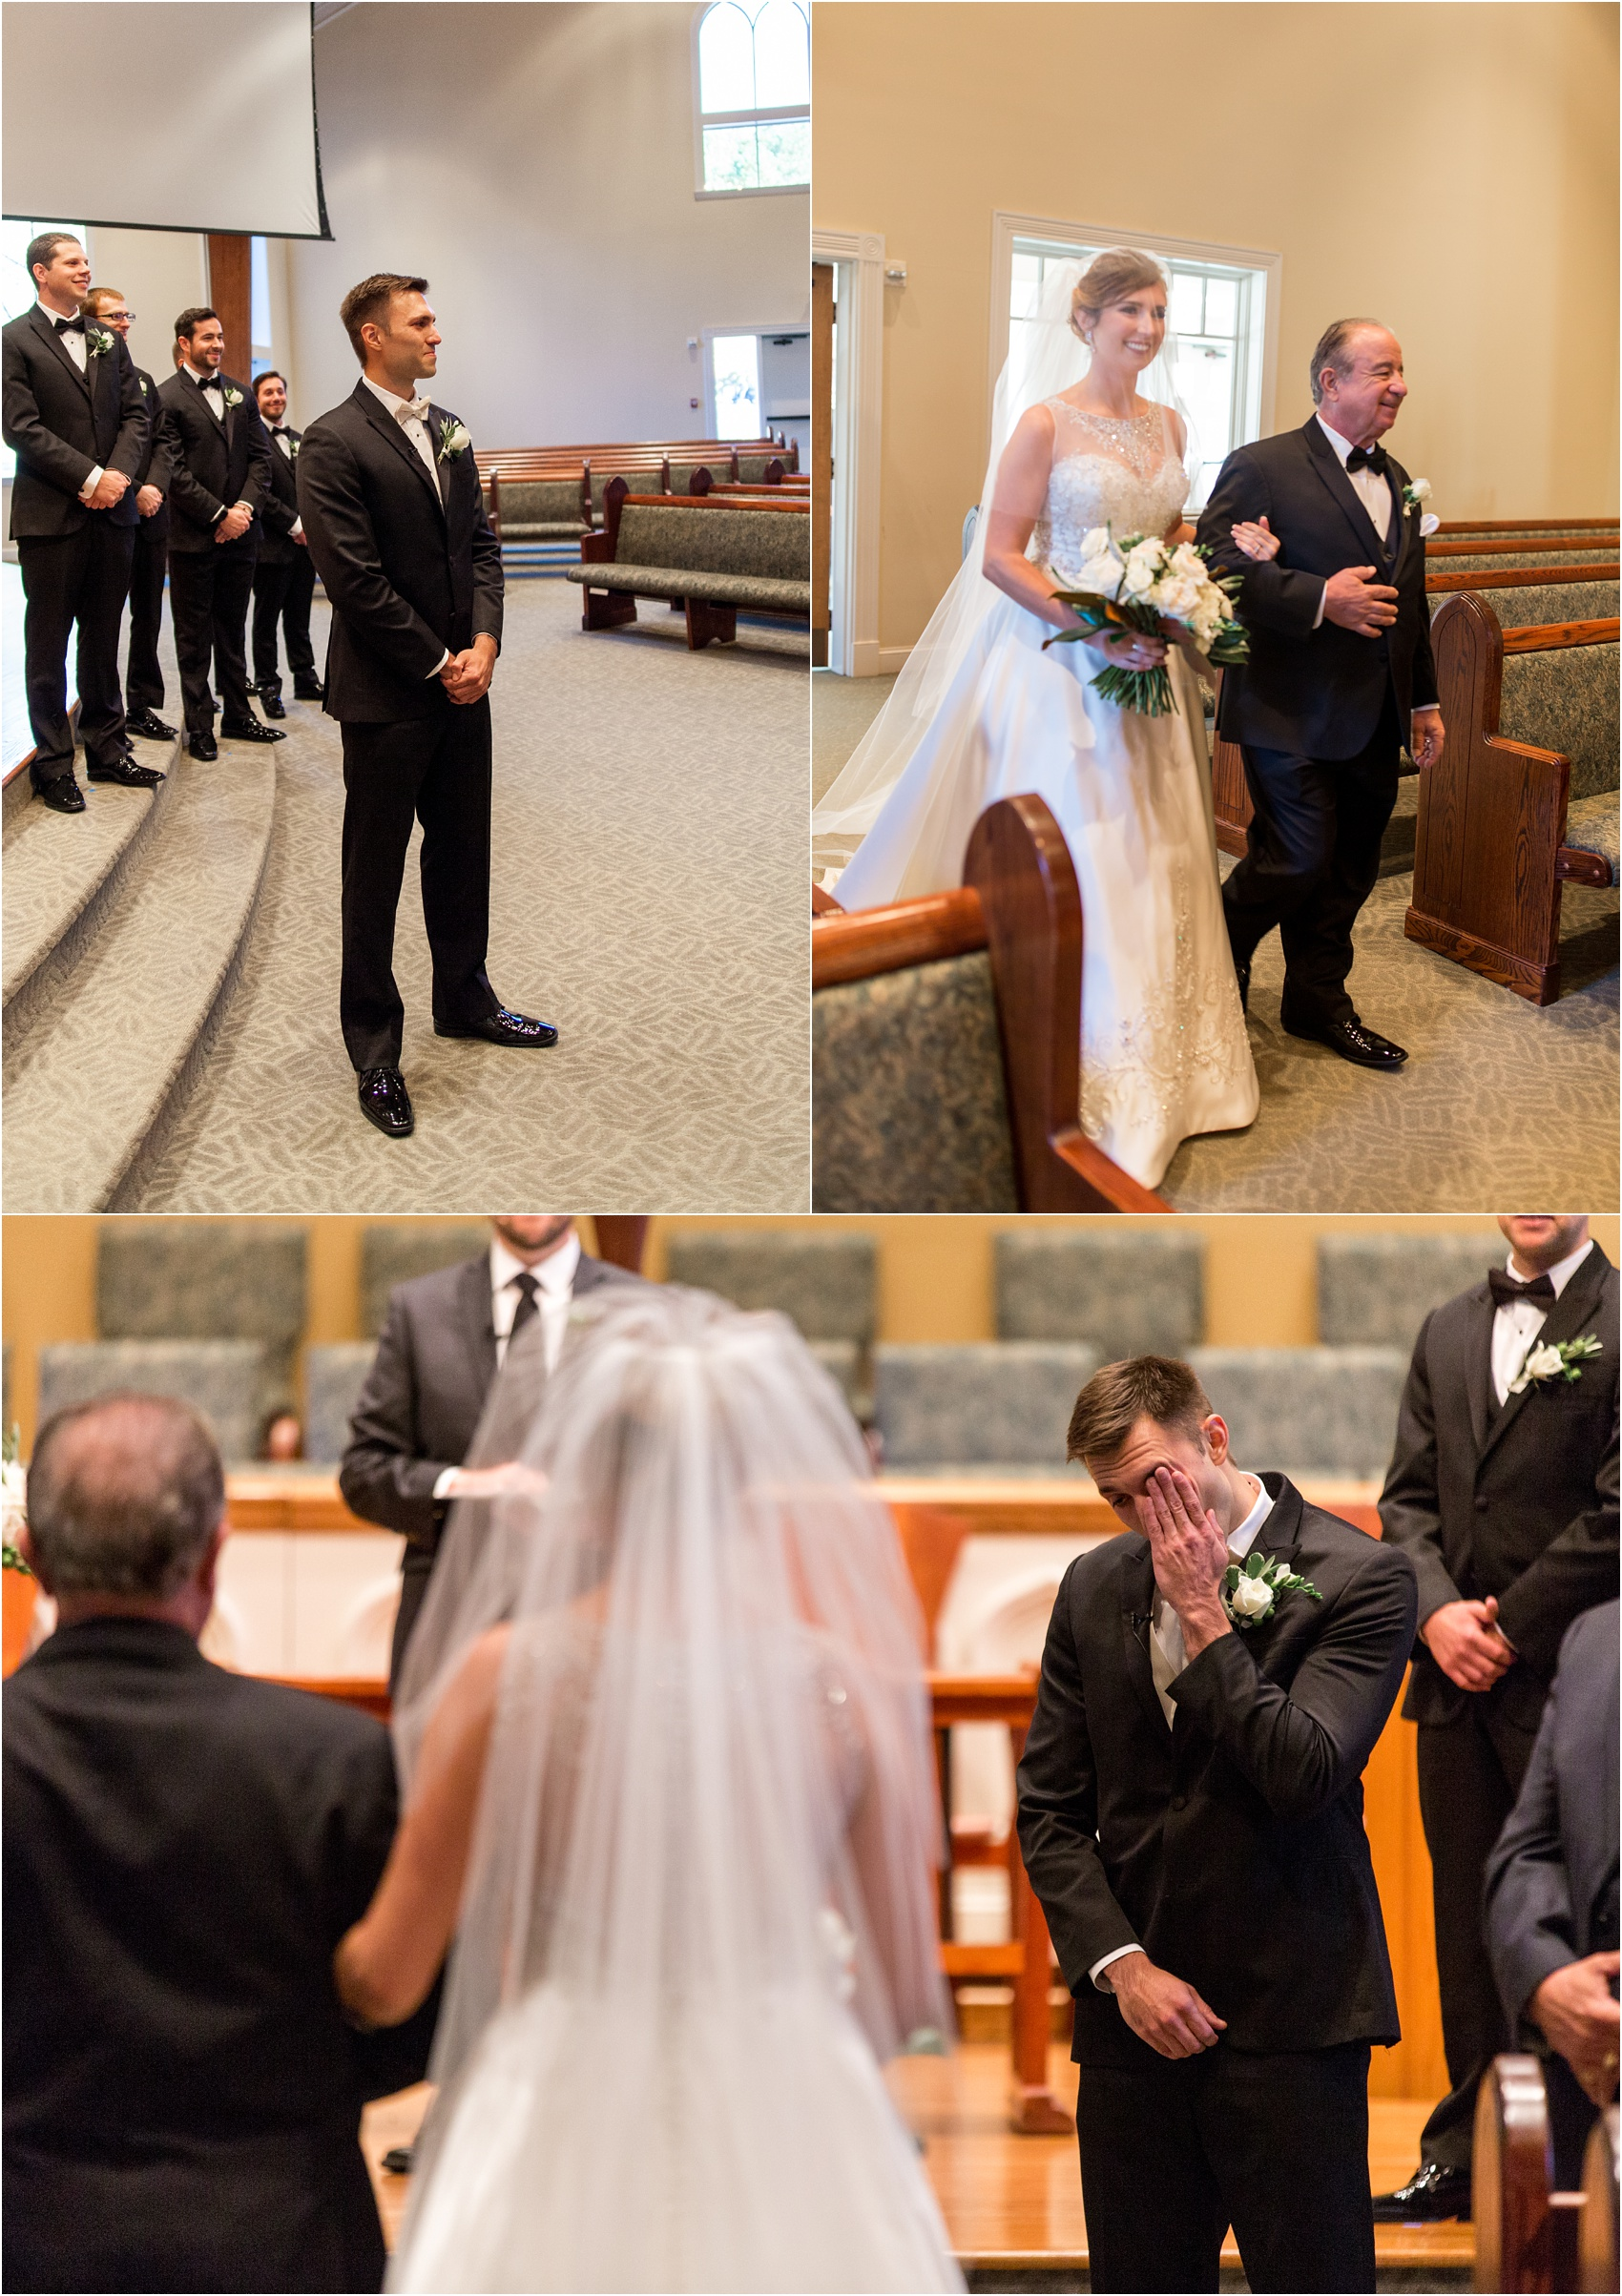 Savannah Eve Photography- Bottiglion-Scope Wedding- Sneak Peek-15.jpg